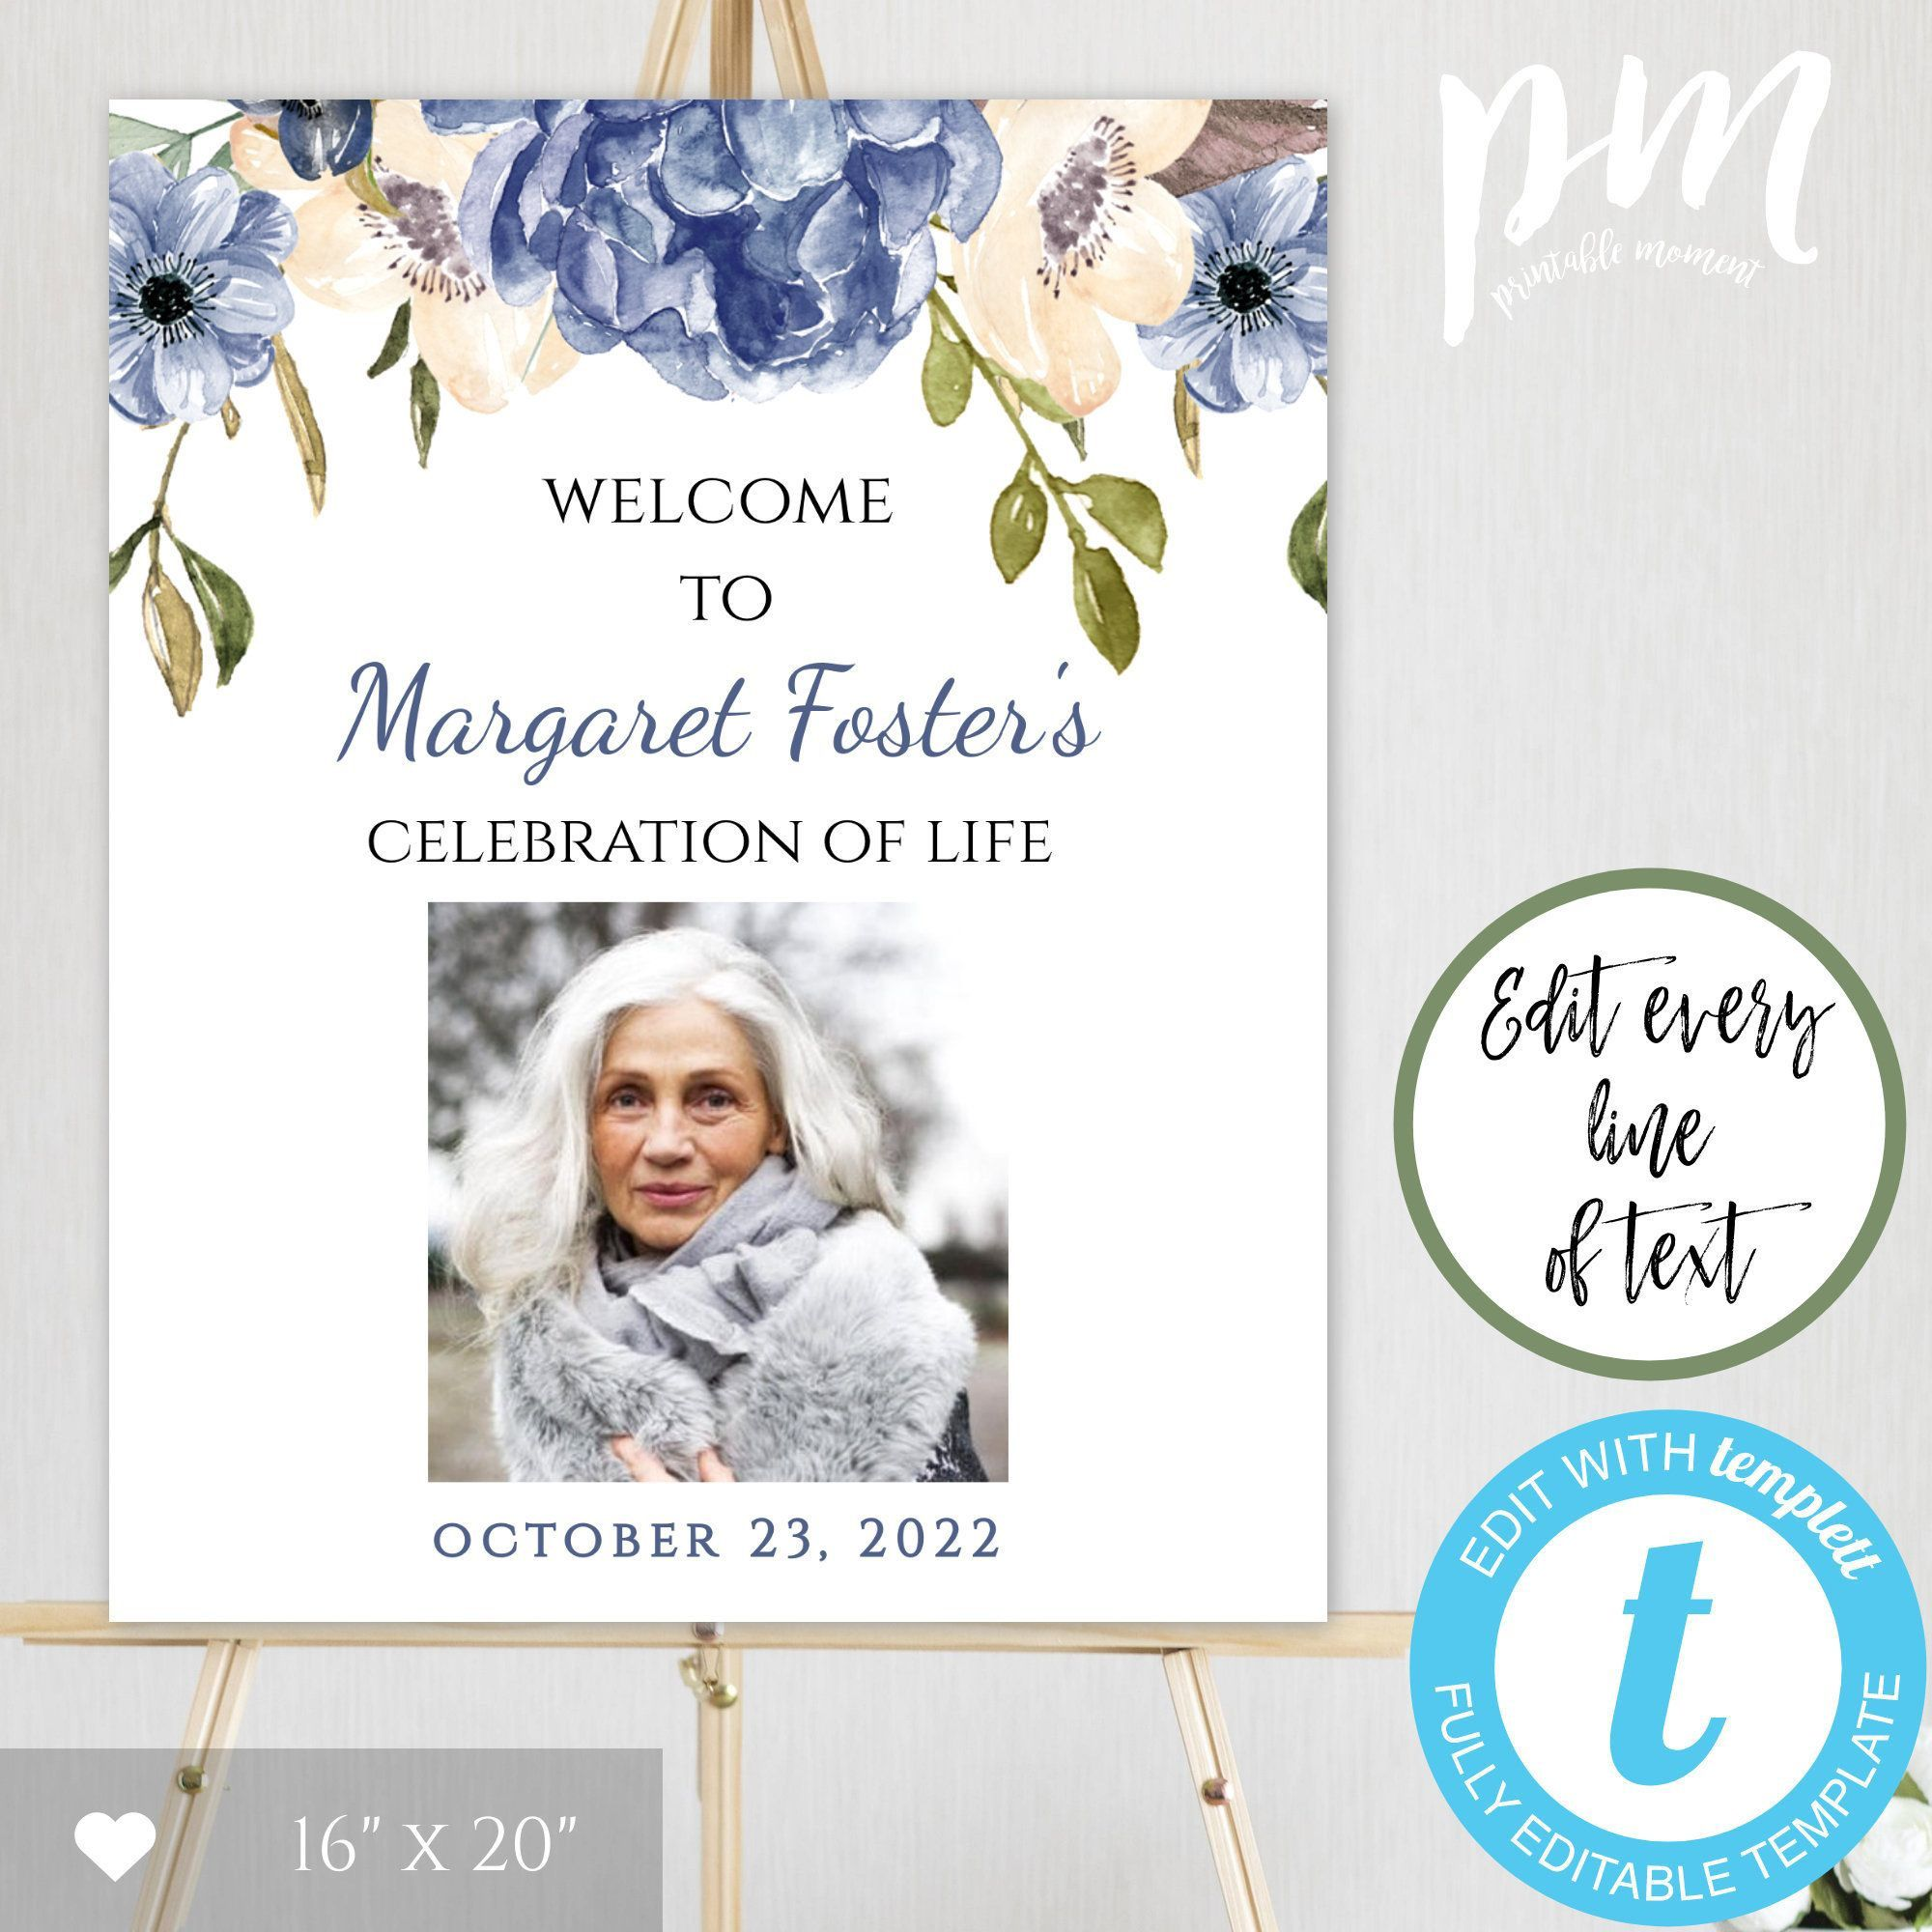 004 Unbelievable Celebration Of Life Template Free Download Design  InvitationFull